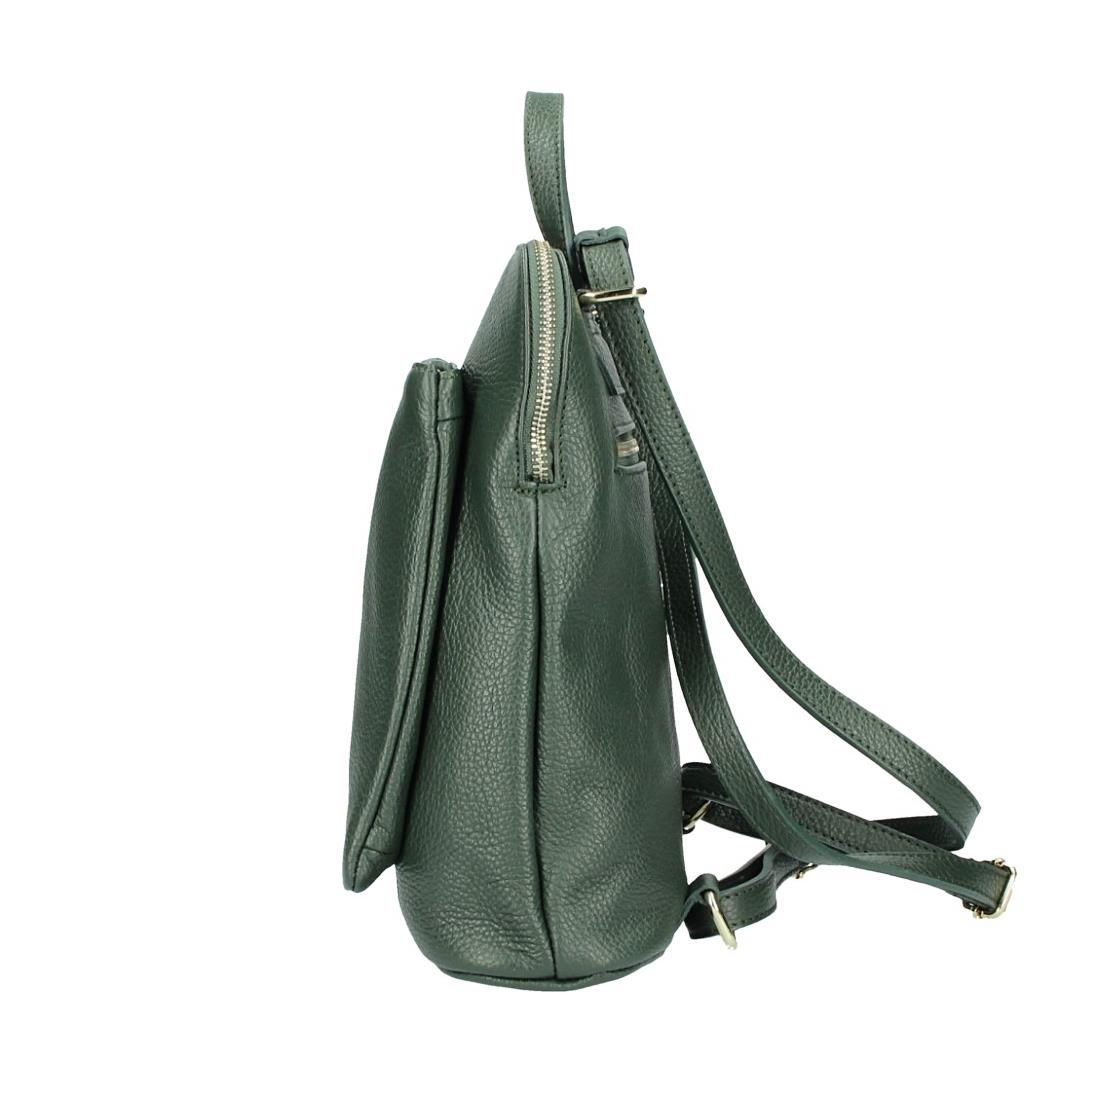 ITALy-DAMEN-LEDER-Reise-RUCKSACK-SchulterTasche-Shopper-Backpack-Ledertasche-BAG Indexbild 82